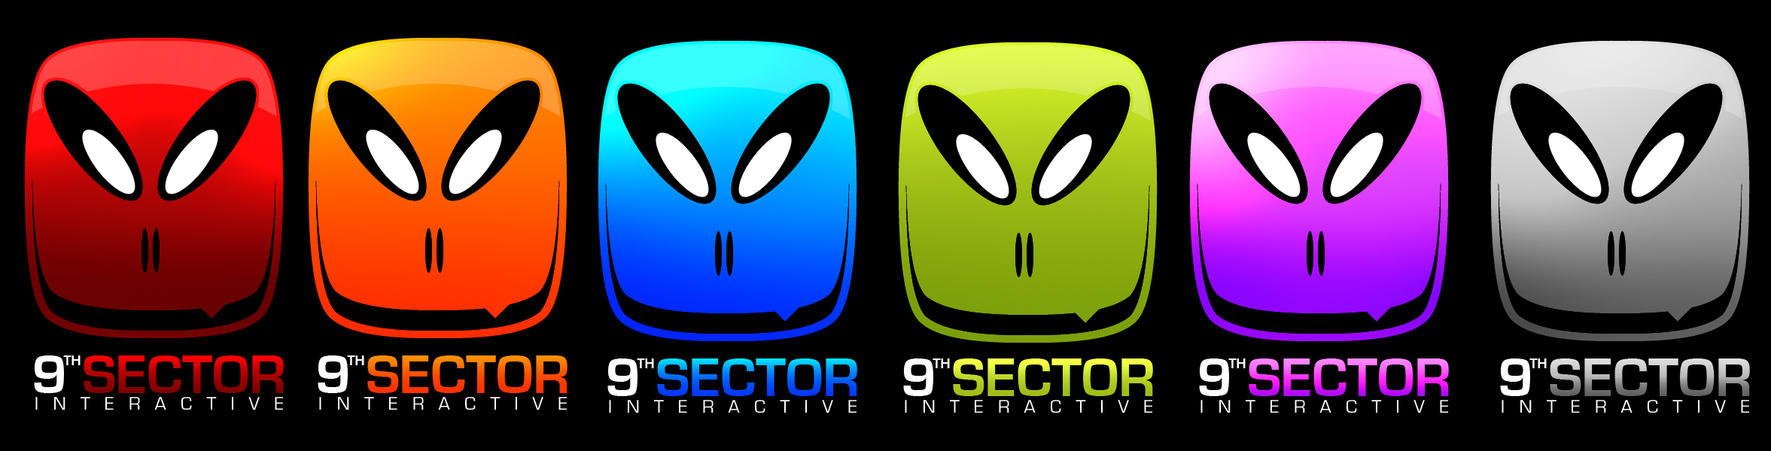 9thSector Logo Concept COLOURS by Nizzles